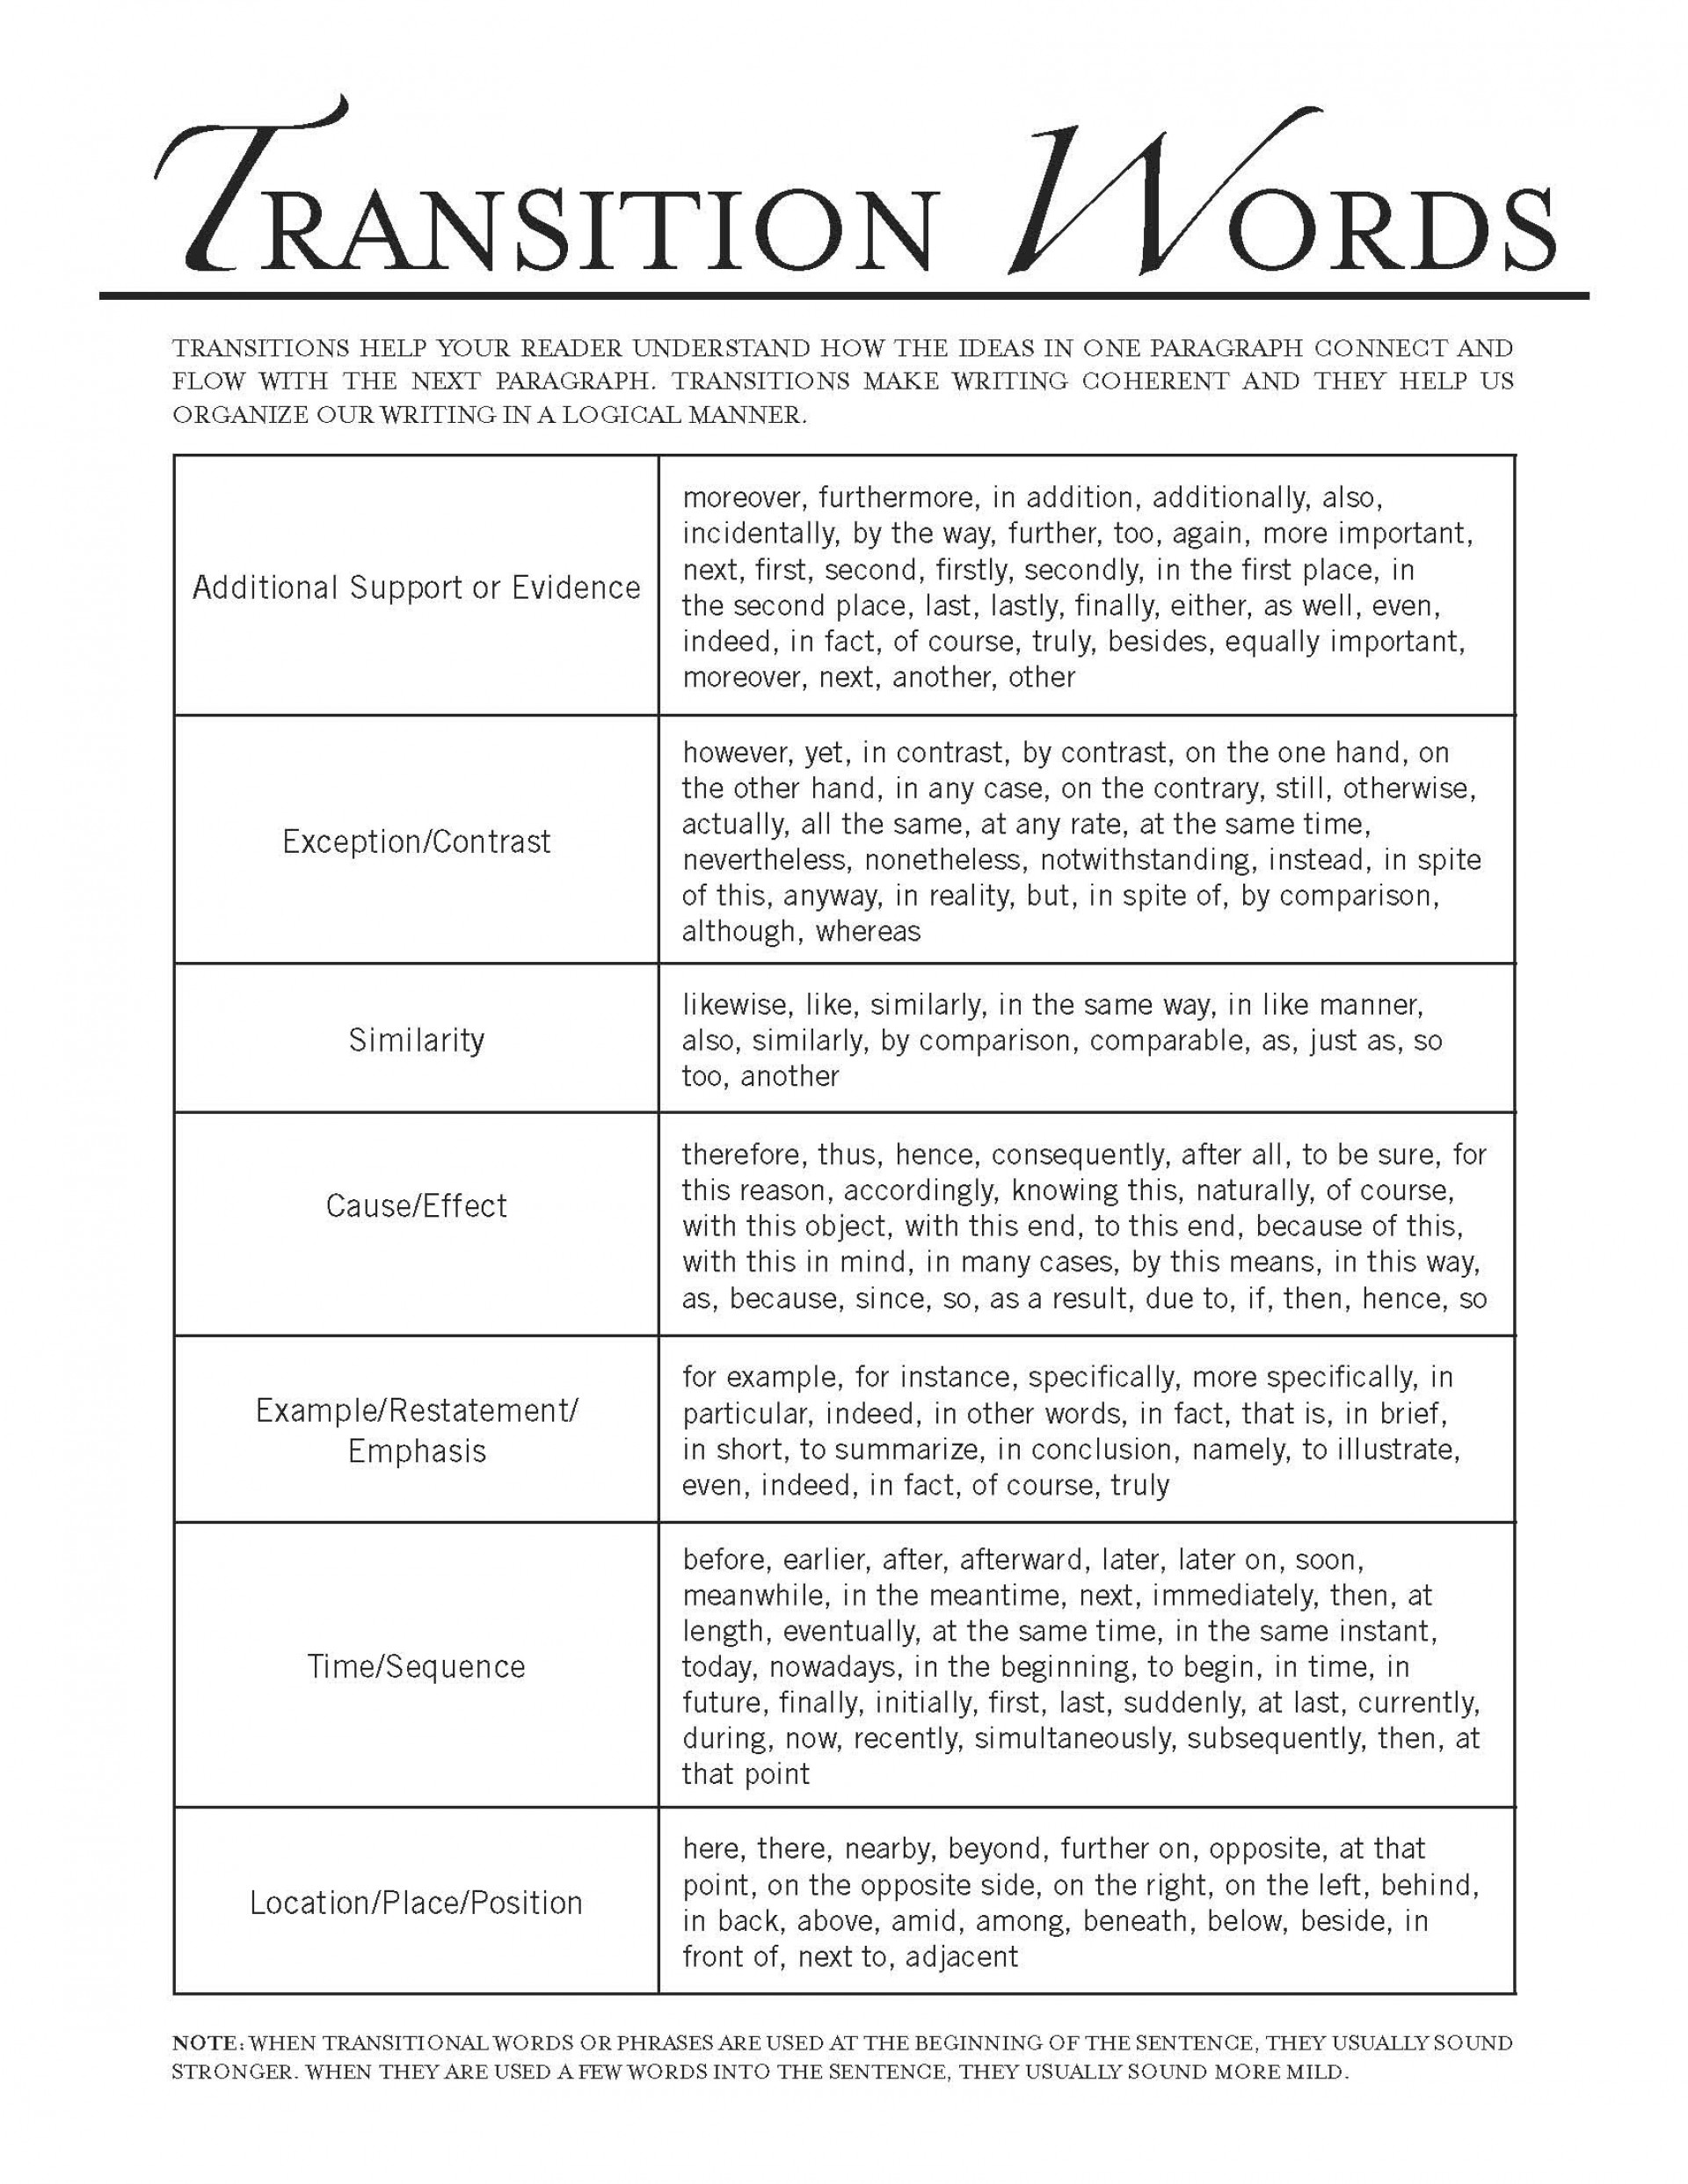 017 Another Word For Conclusion An Essay Example One Essays This Ridiculous Paragraph By Unc Words To Start In Persuasive Transitionsl1 P Off Sentence Argumentative The First Wonderful 1920